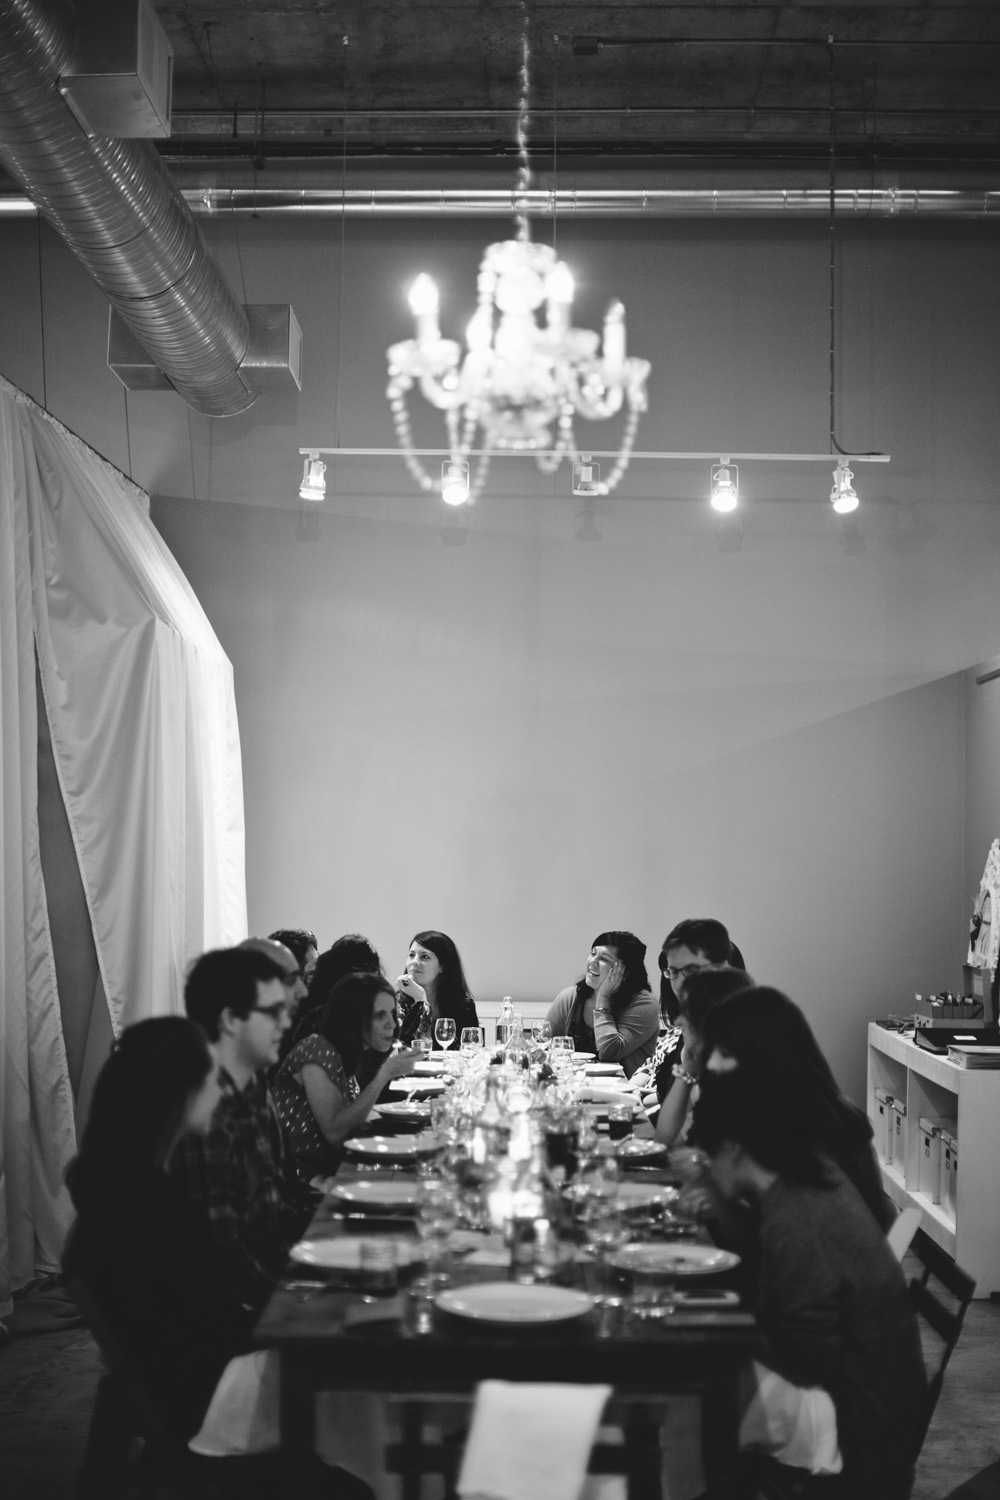 Homespun ATL Dinner Feb 2013Atlanta, GA Photography by Morgan Blake_Low Res025.jpg